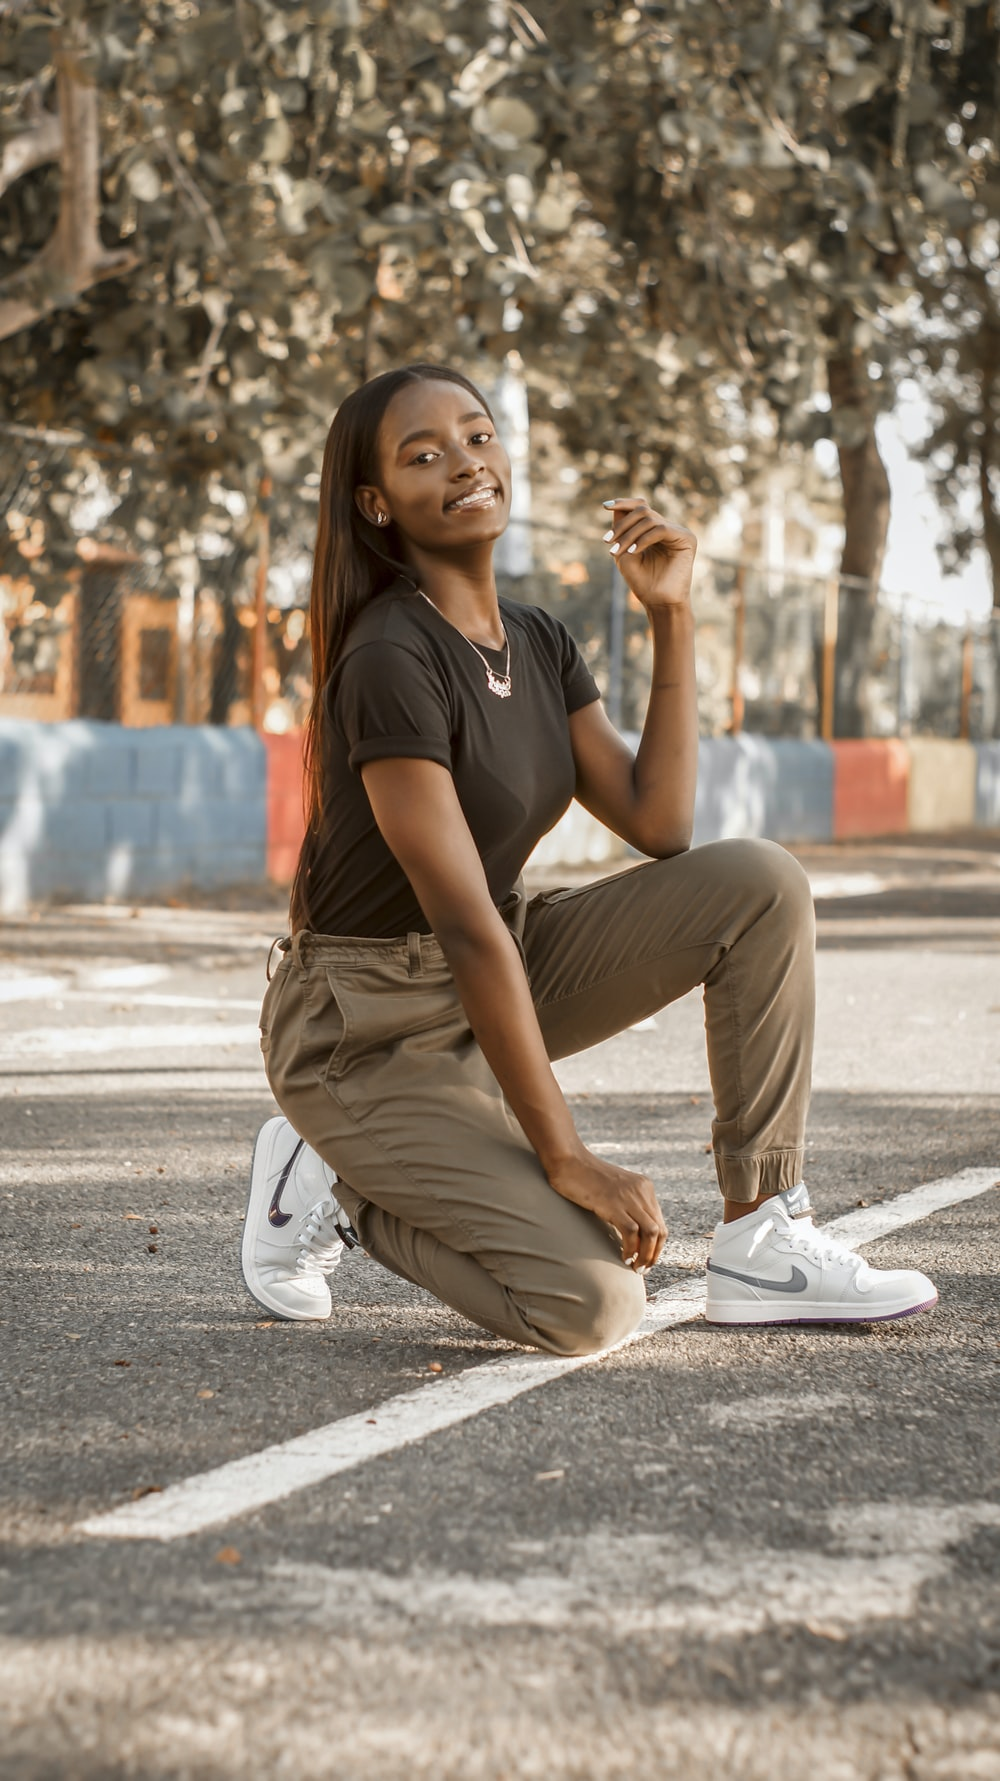 woman in black t-shirt and brown pants sitting on concrete floor during daytime